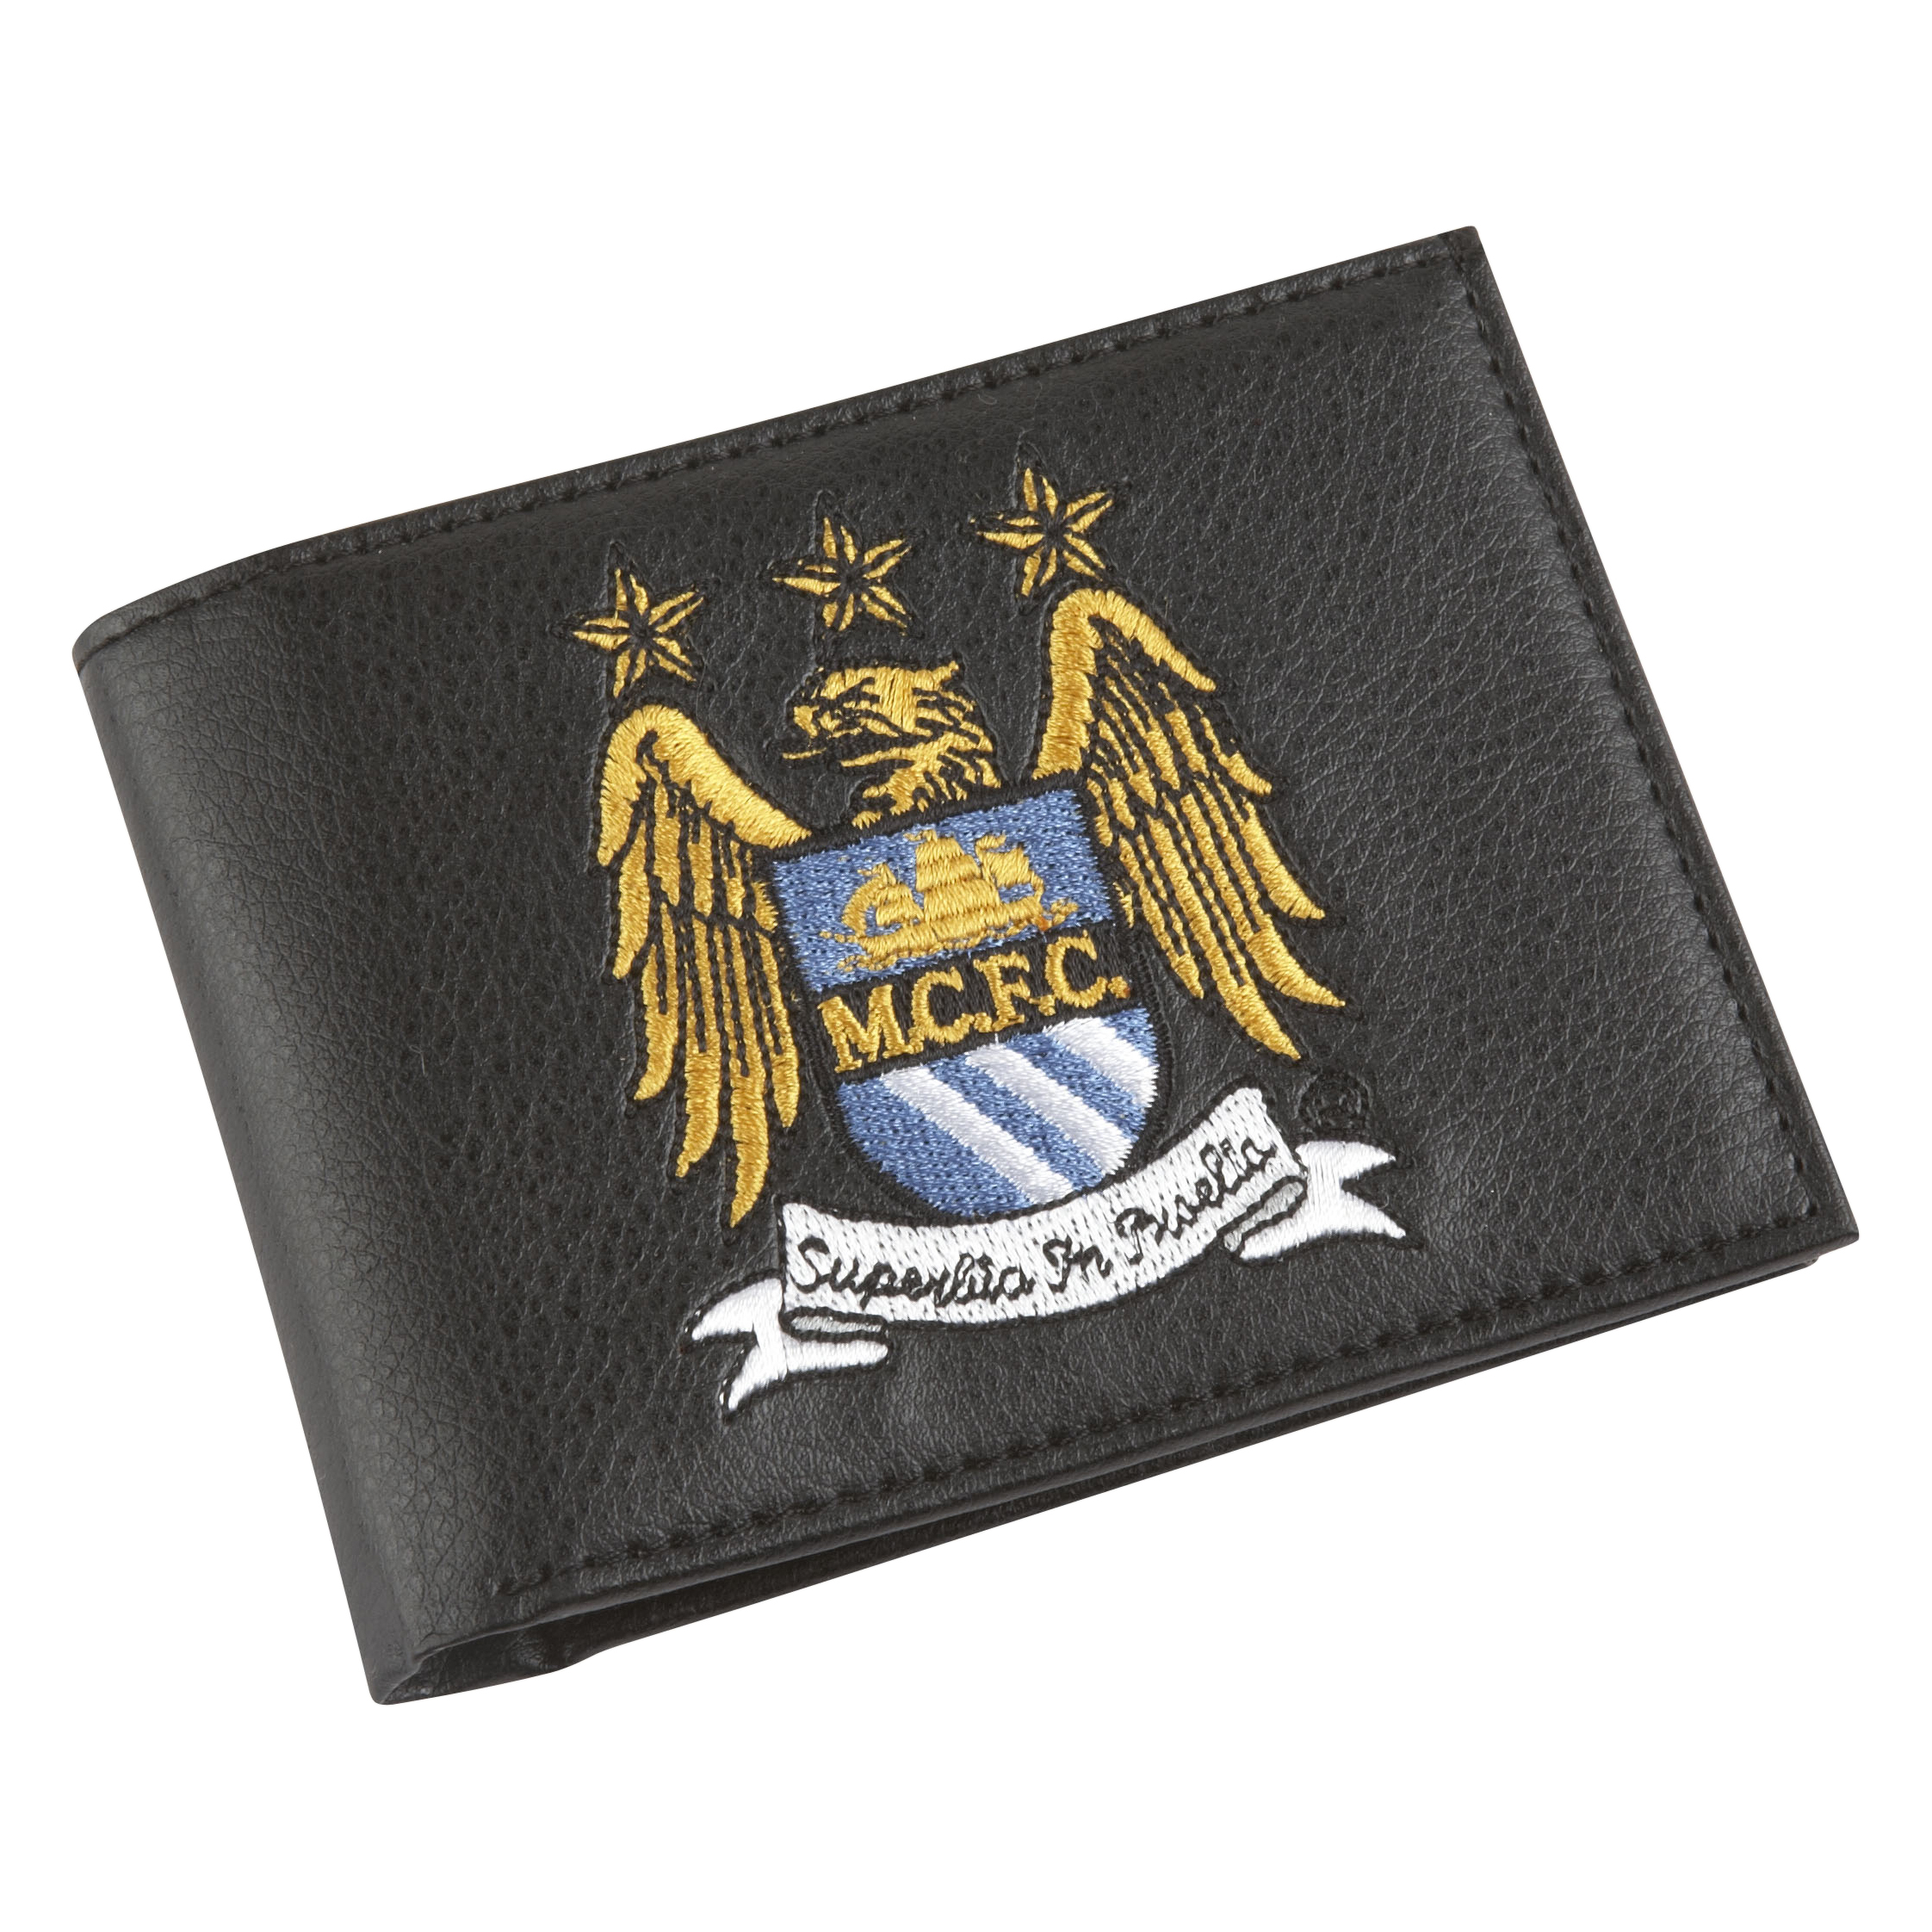 Manchester City Embroidered Crest Wallet - Black